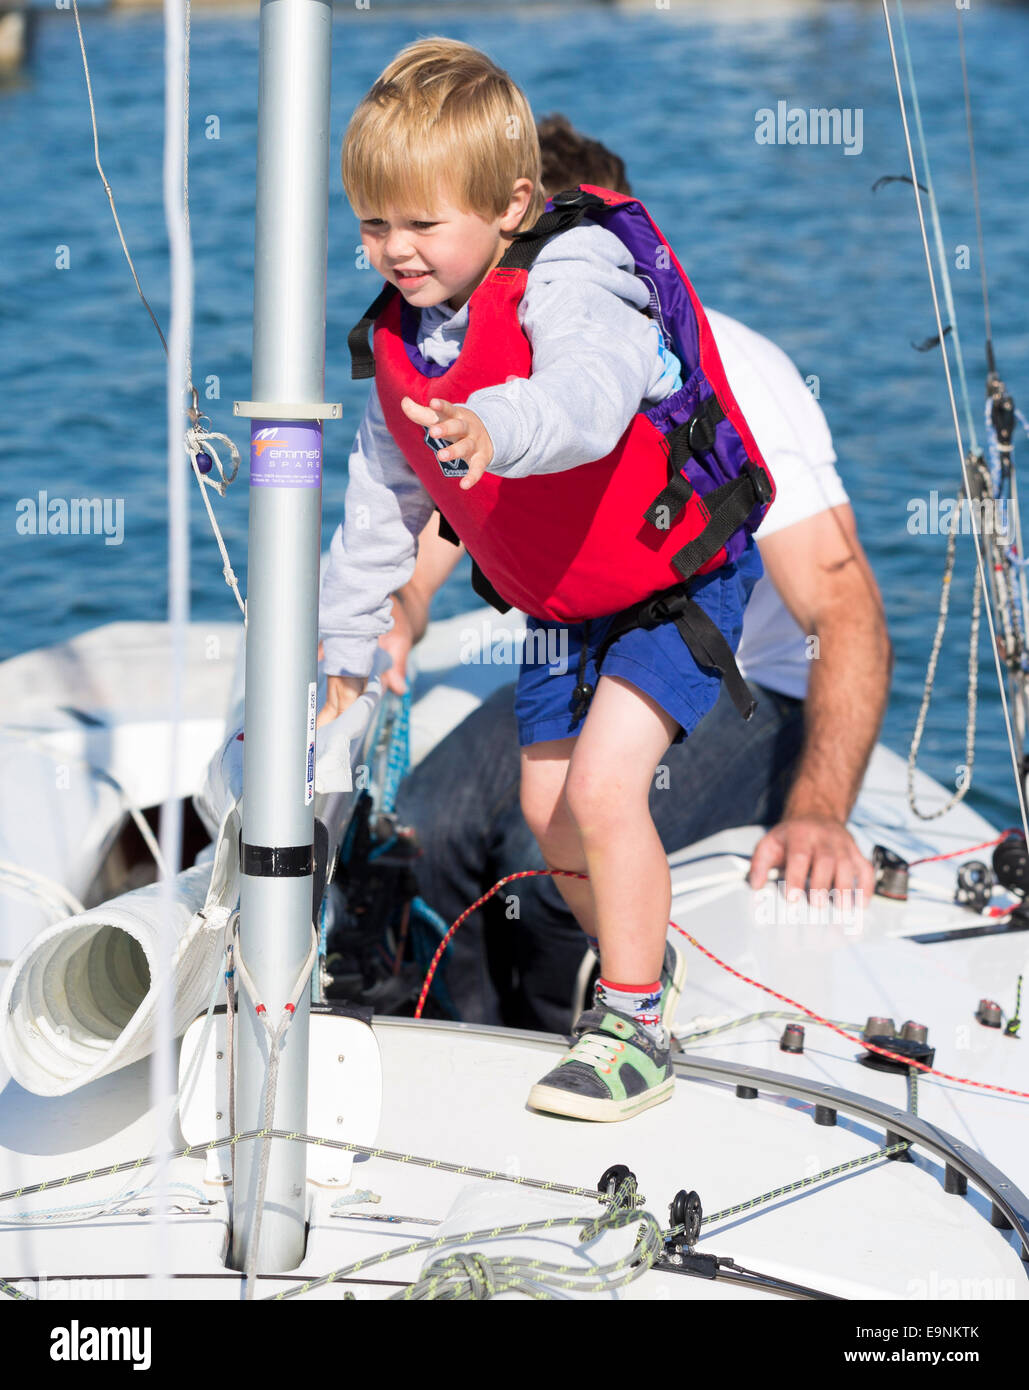 Freddie Simpson 4, and Iain Percy aboard their Star class keel-boat for the Bart's Bash sailing regatta in Weymouth, Stock Photo